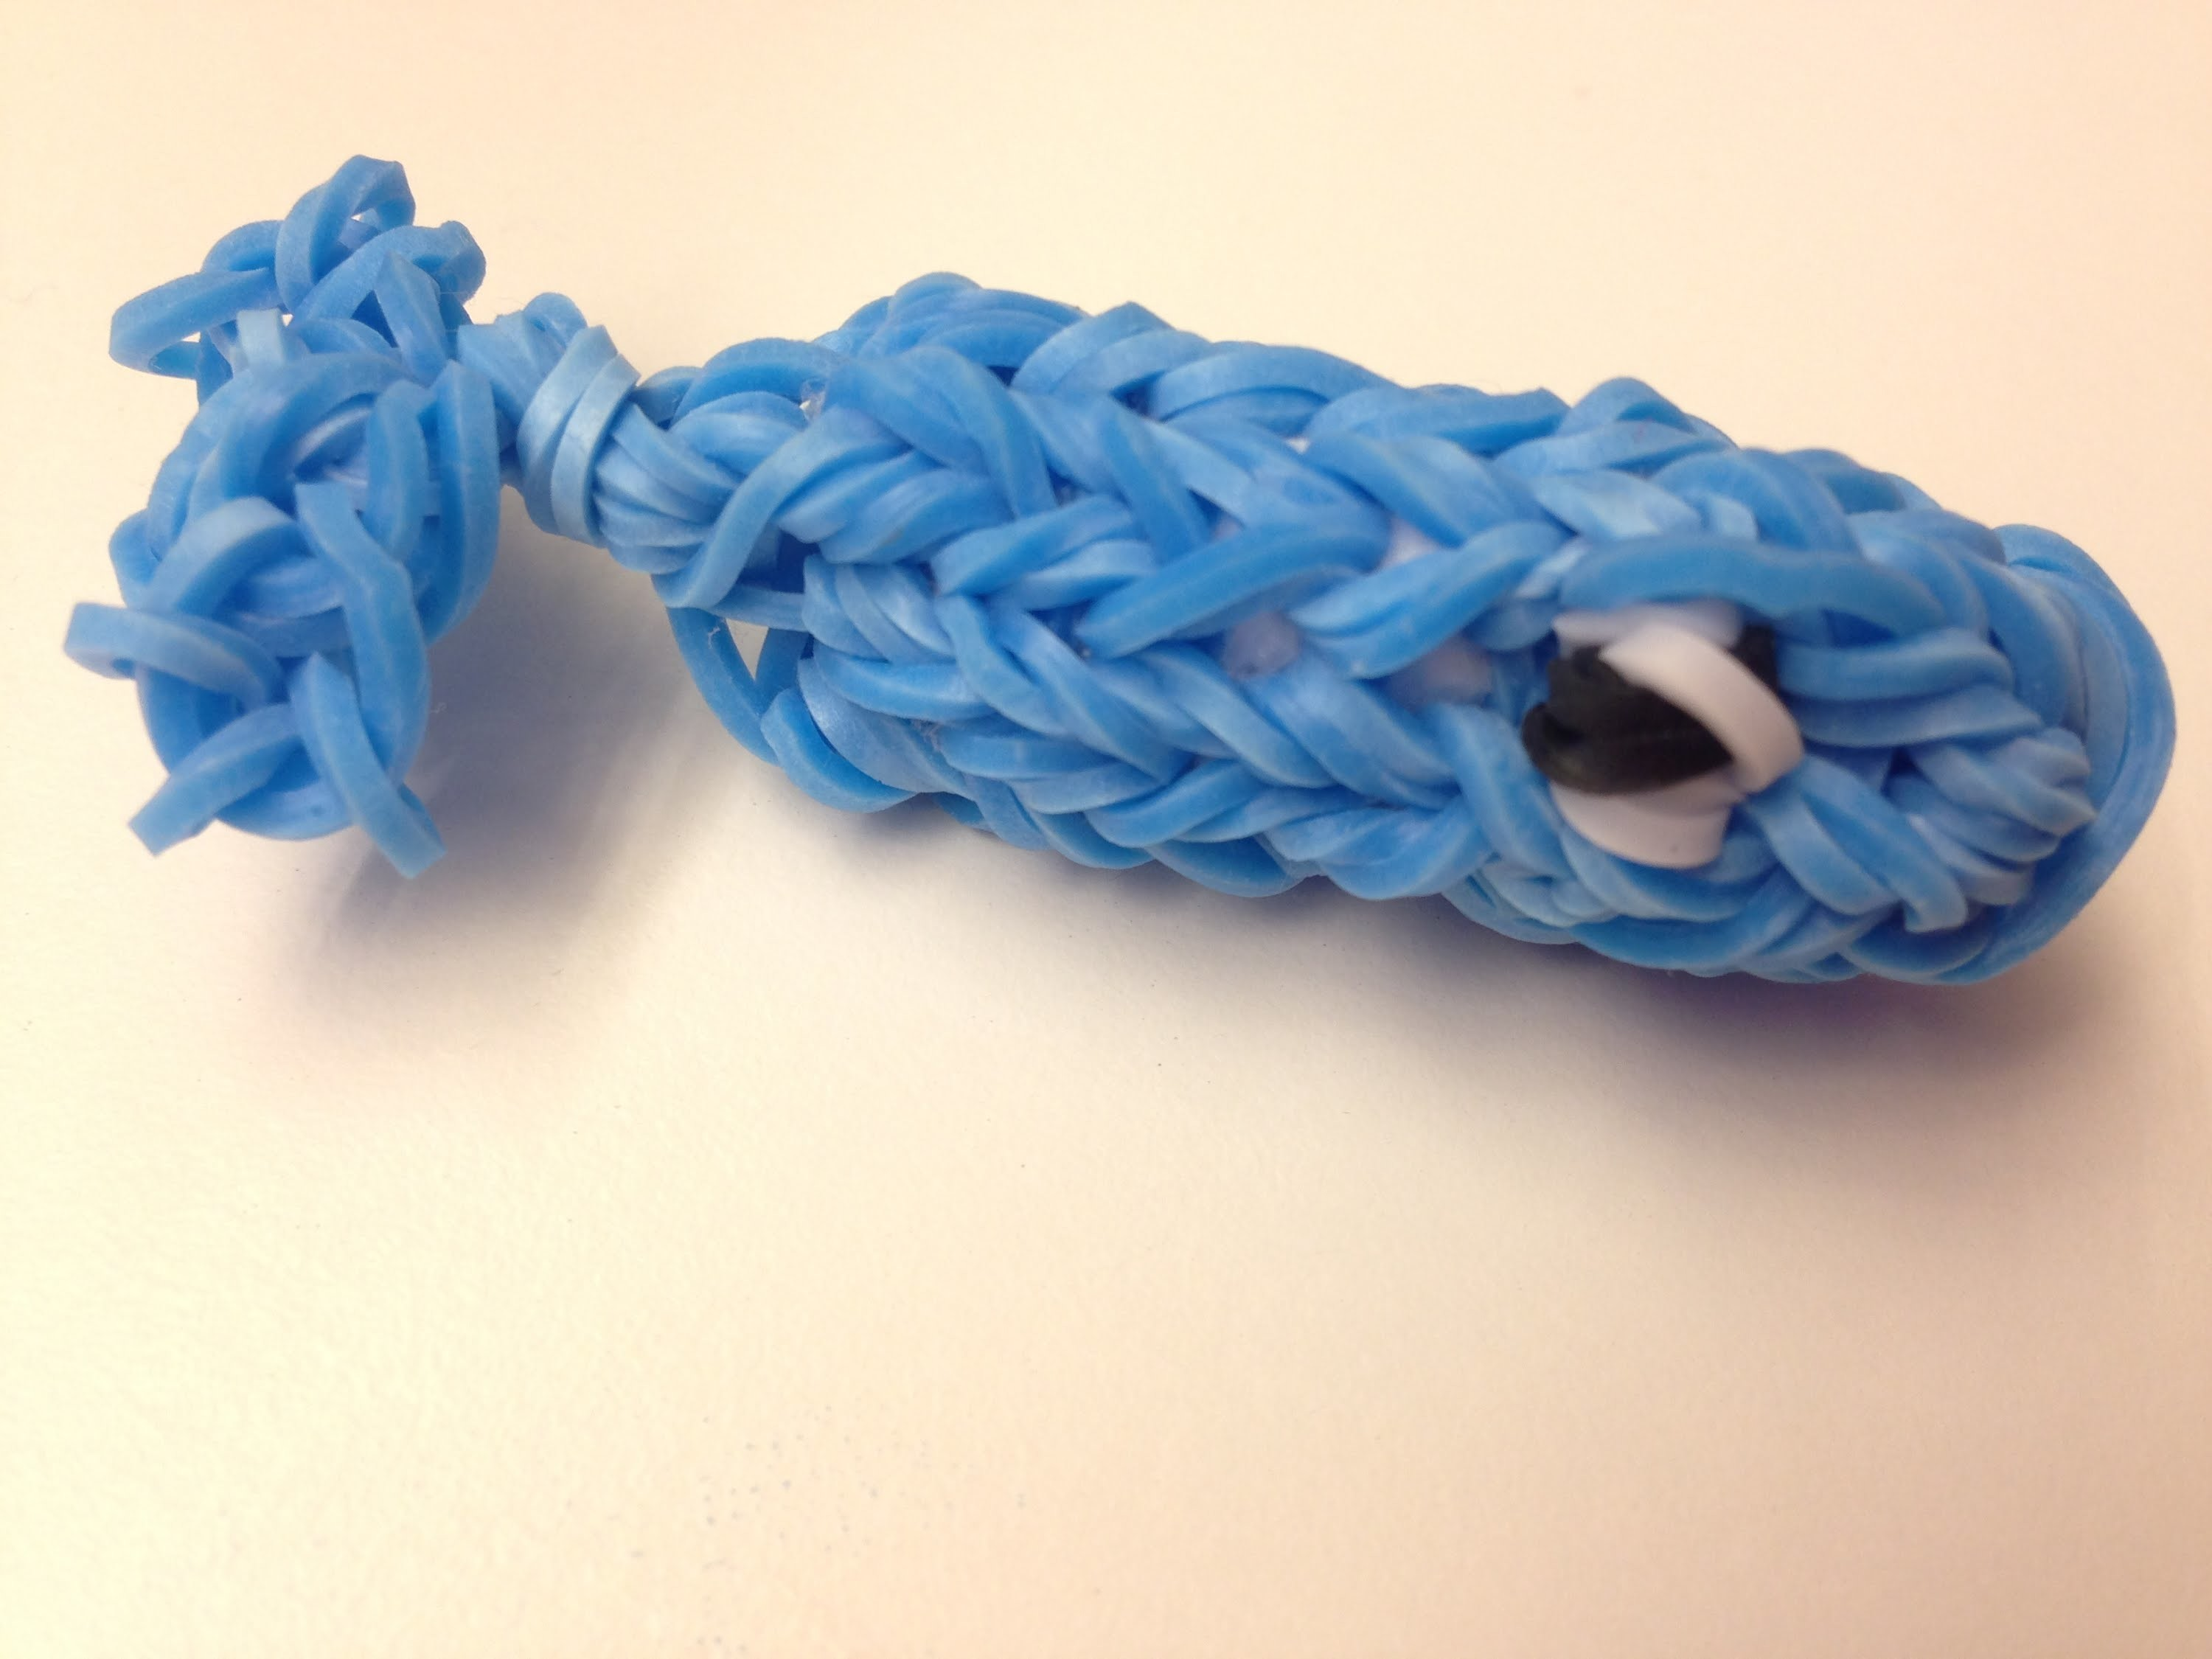 Rainbow Loom 3D Whale - How To Make